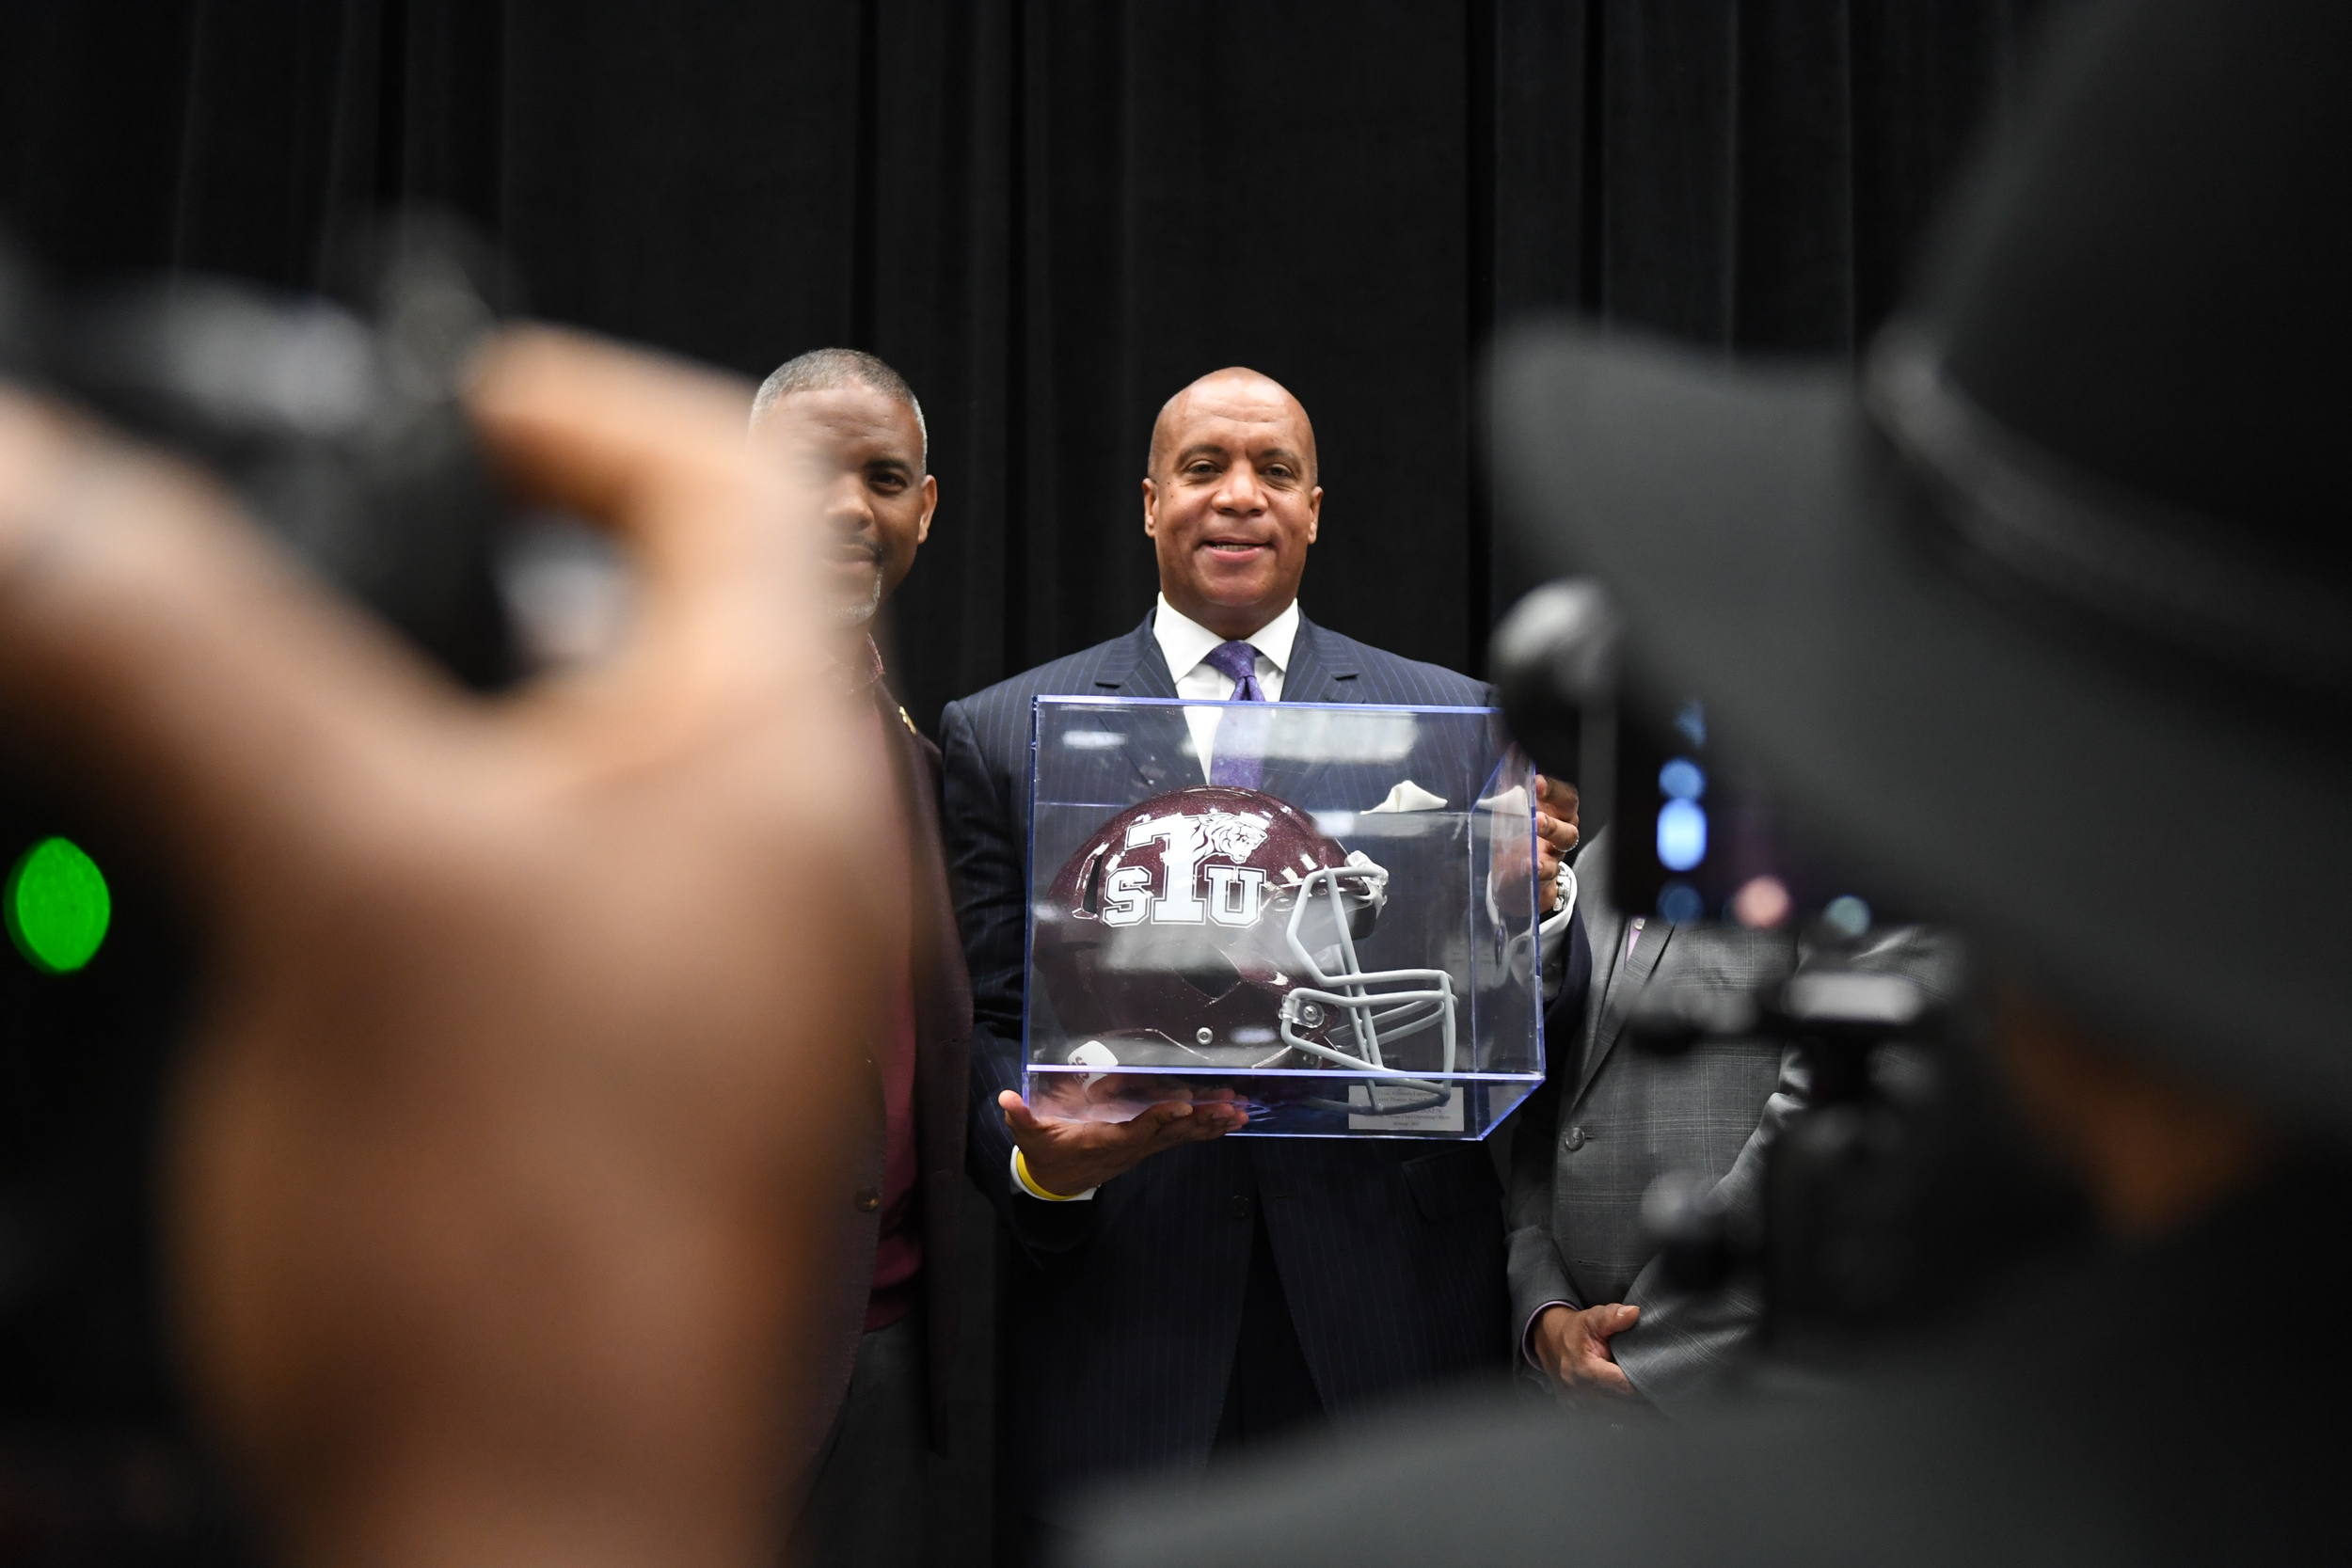 Minnesota Vikings COO Kevin Warren holds his award from Texas Southern University on February 4, 2017 at the George Brown Convention Center in Houston, TX.